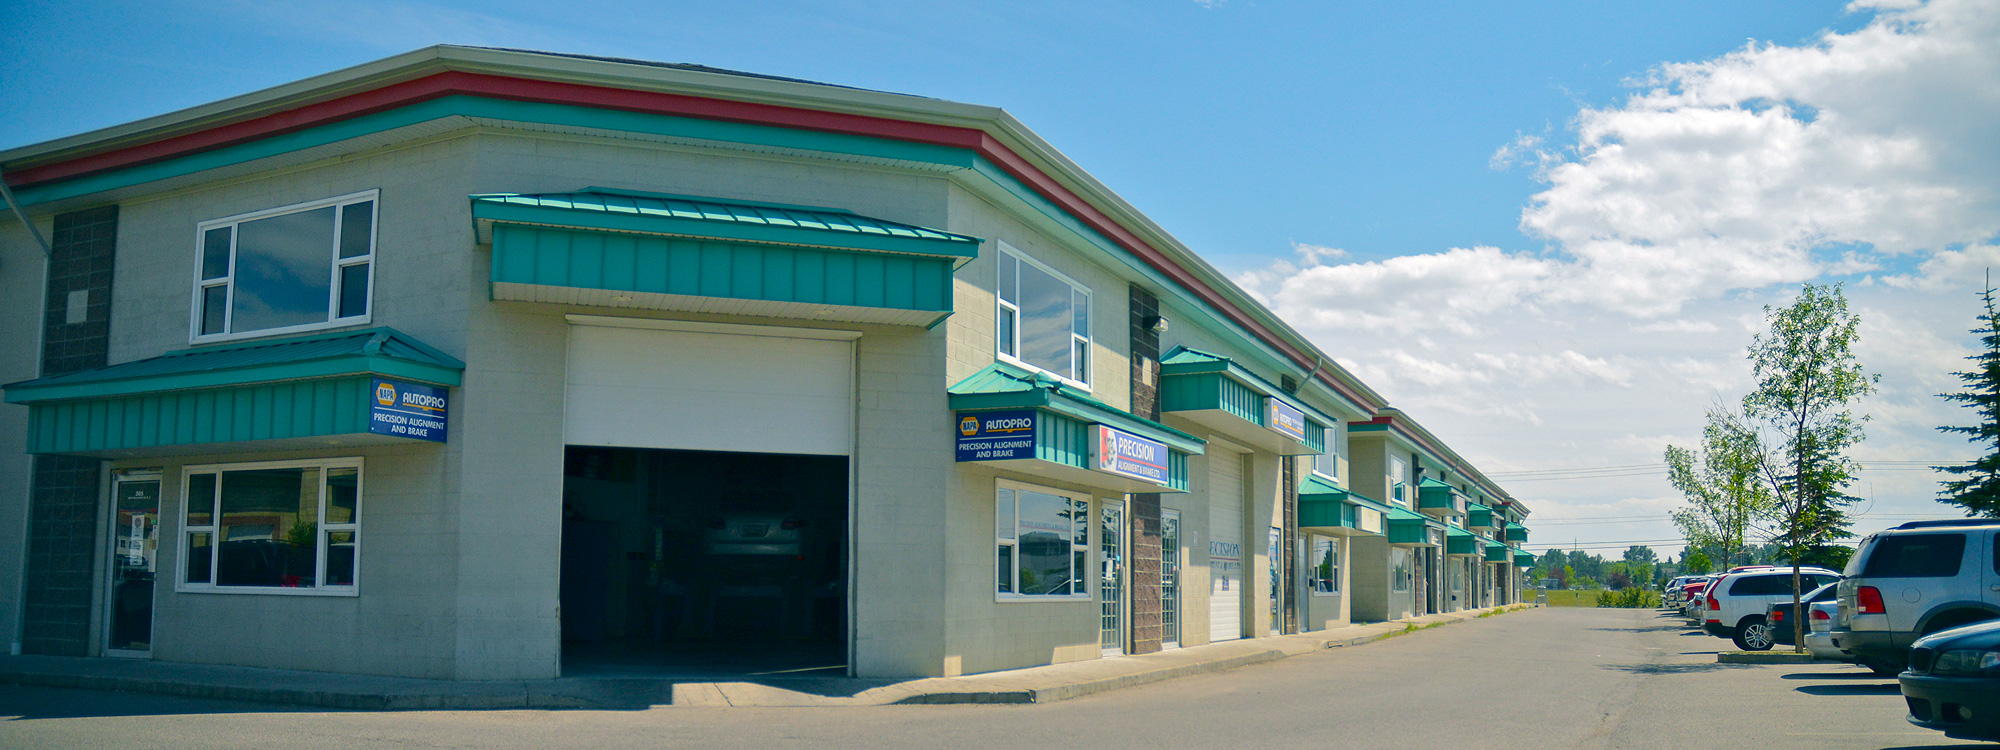 Precision Alignment and Brake is located in northeast Calgary